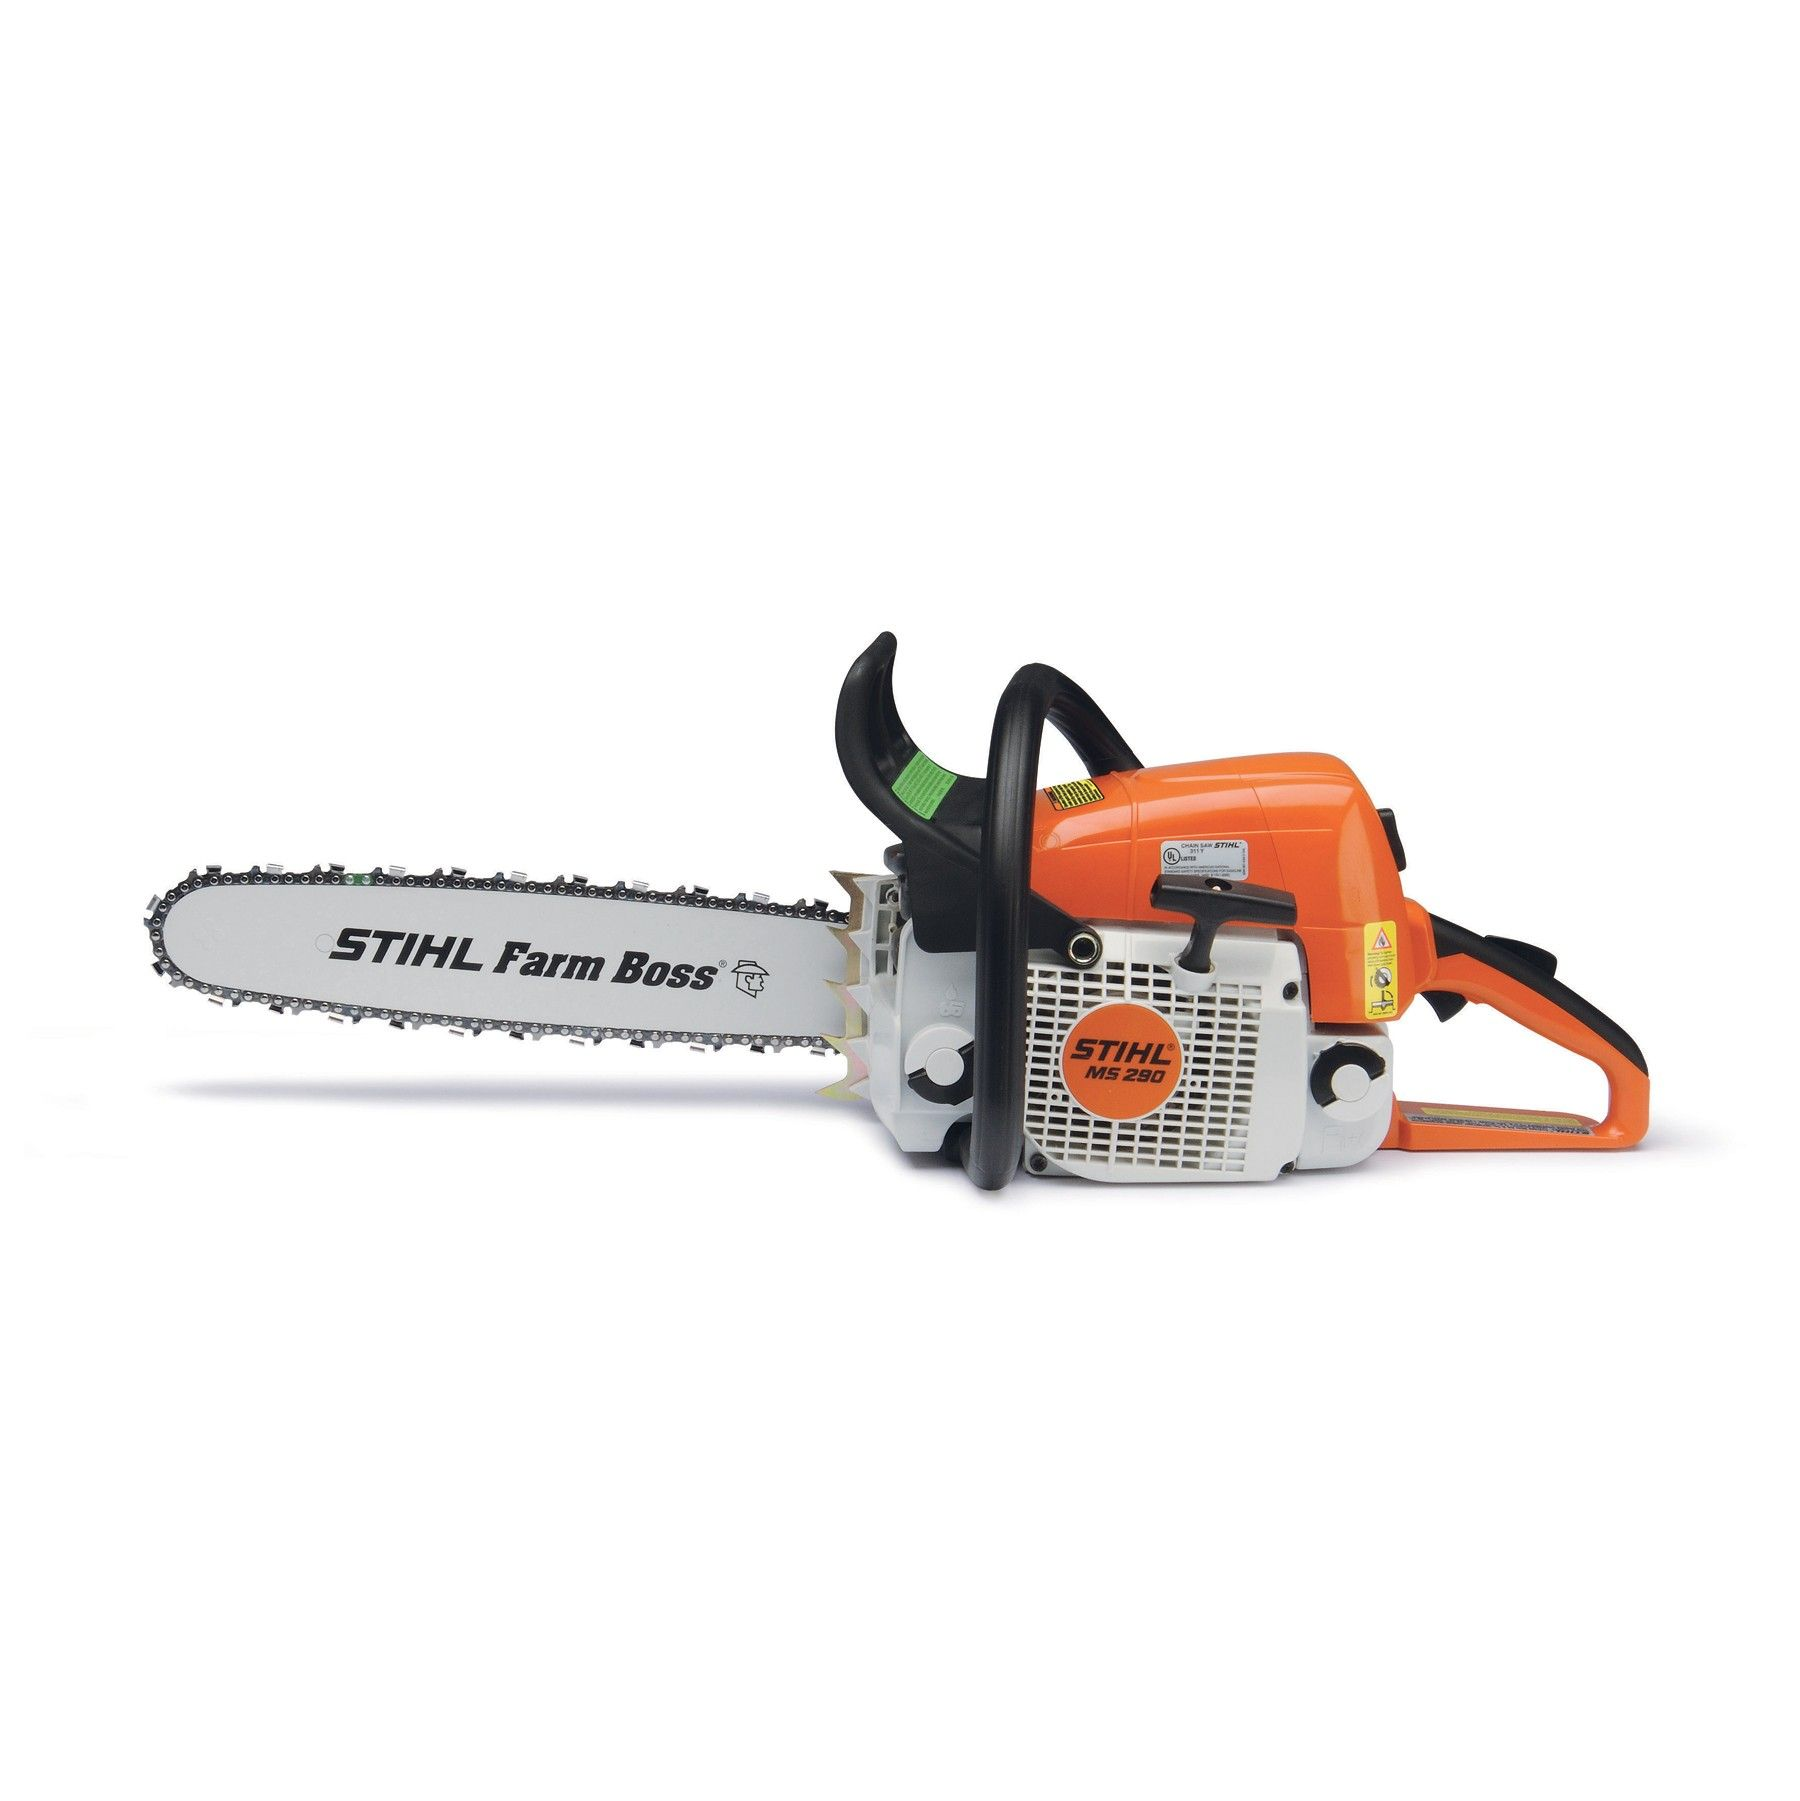 Stihl ms 270 farm boss chain saw landscape maintenance chainsaw greentooth